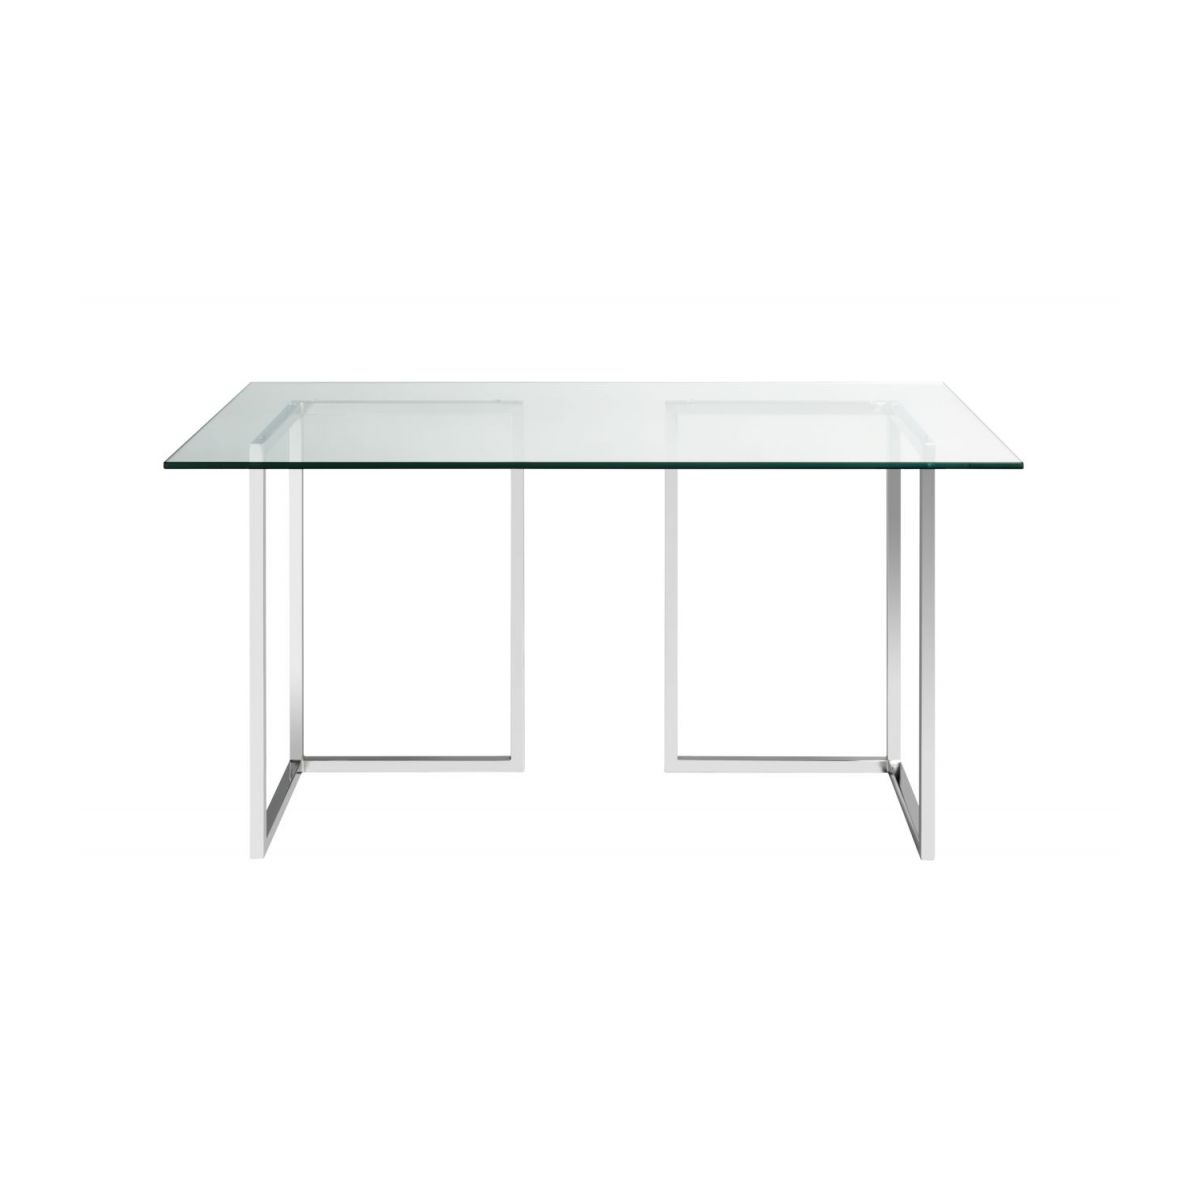 Plateau de table en verre 140x80 cm n°3